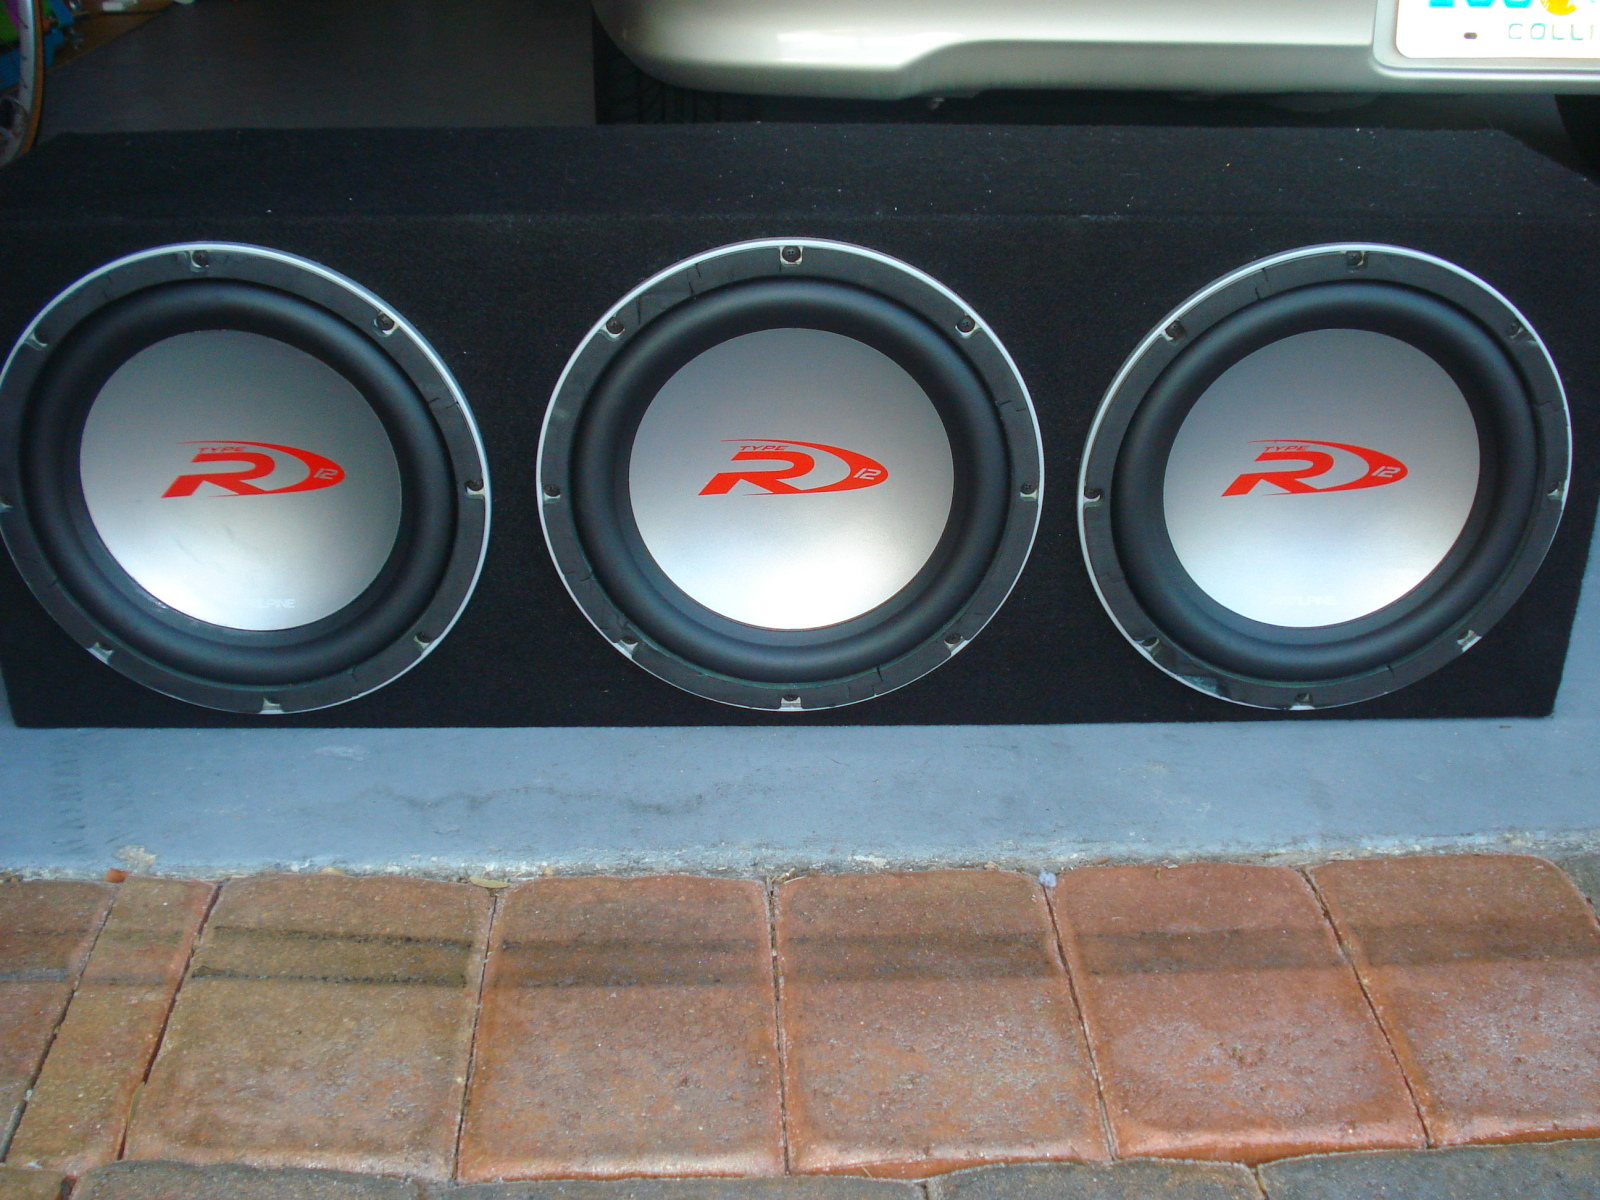 12 alpine type r specs car audio systems. Black Bedroom Furniture Sets. Home Design Ideas